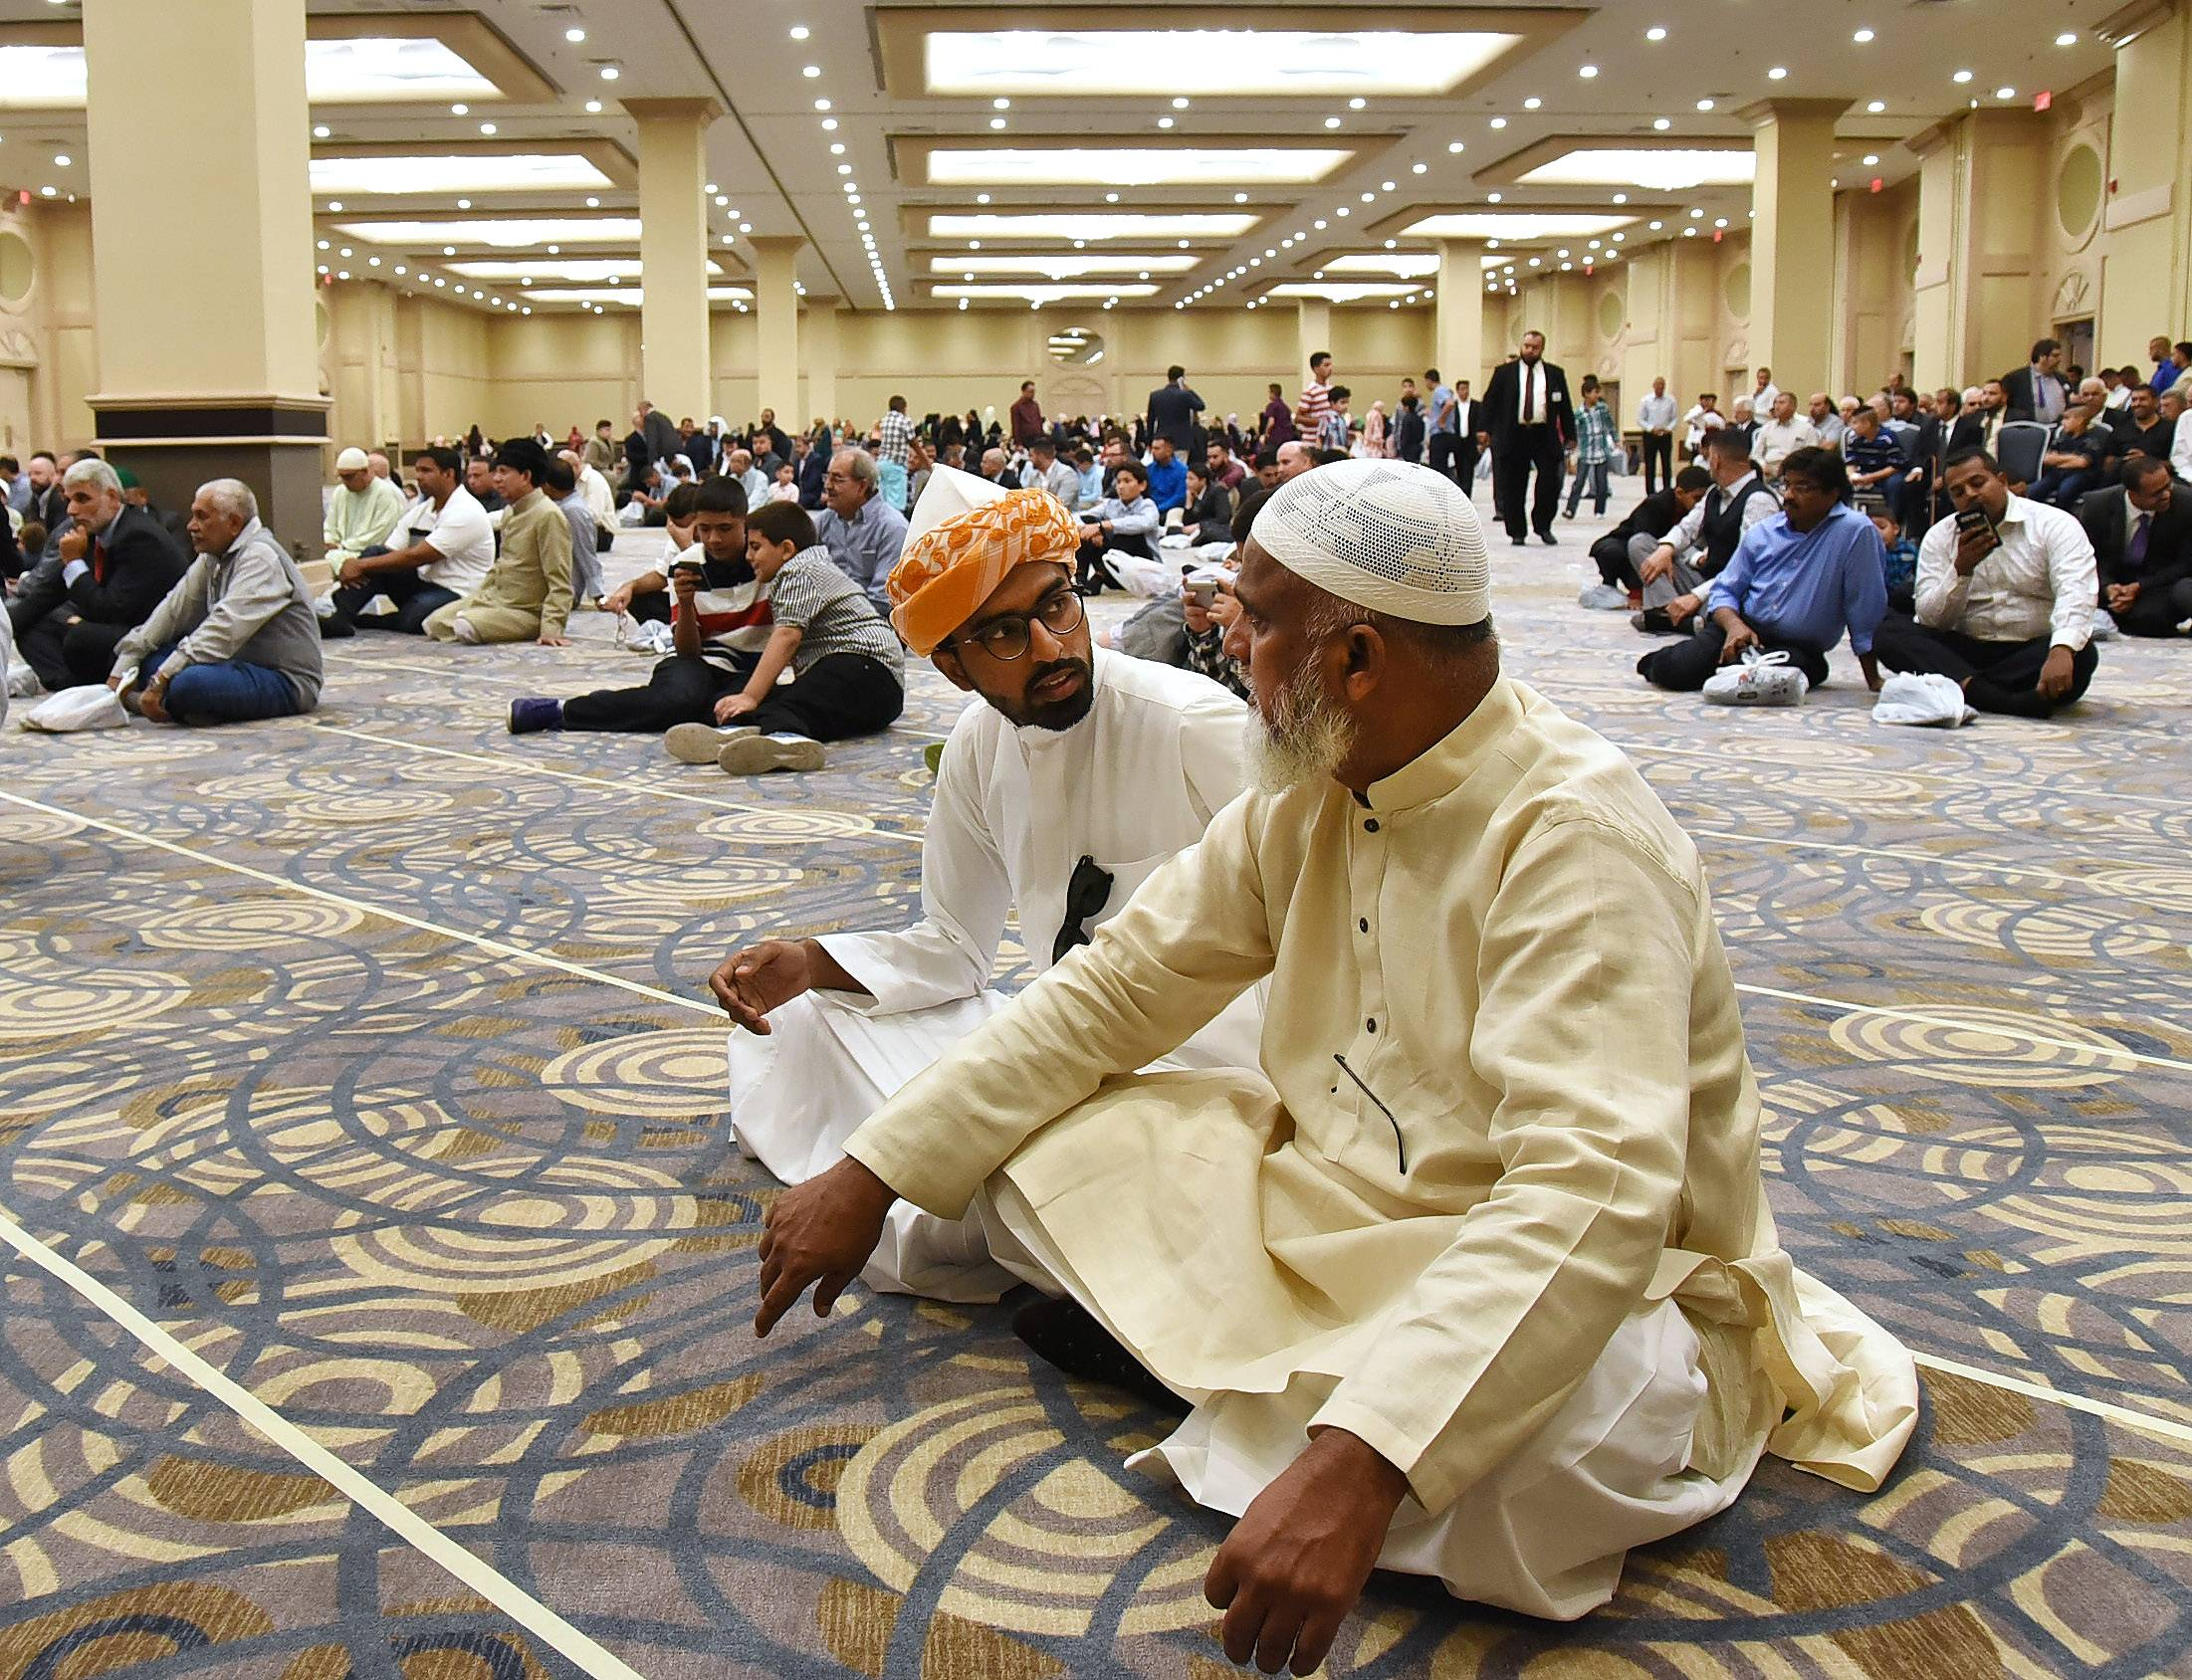 rosemont muslim Rosemont, ill (rns) in their welcome addresses, many leaders of national muslim organizations noted the challenges muslim americans face but they also pointed out reasons for optimism.